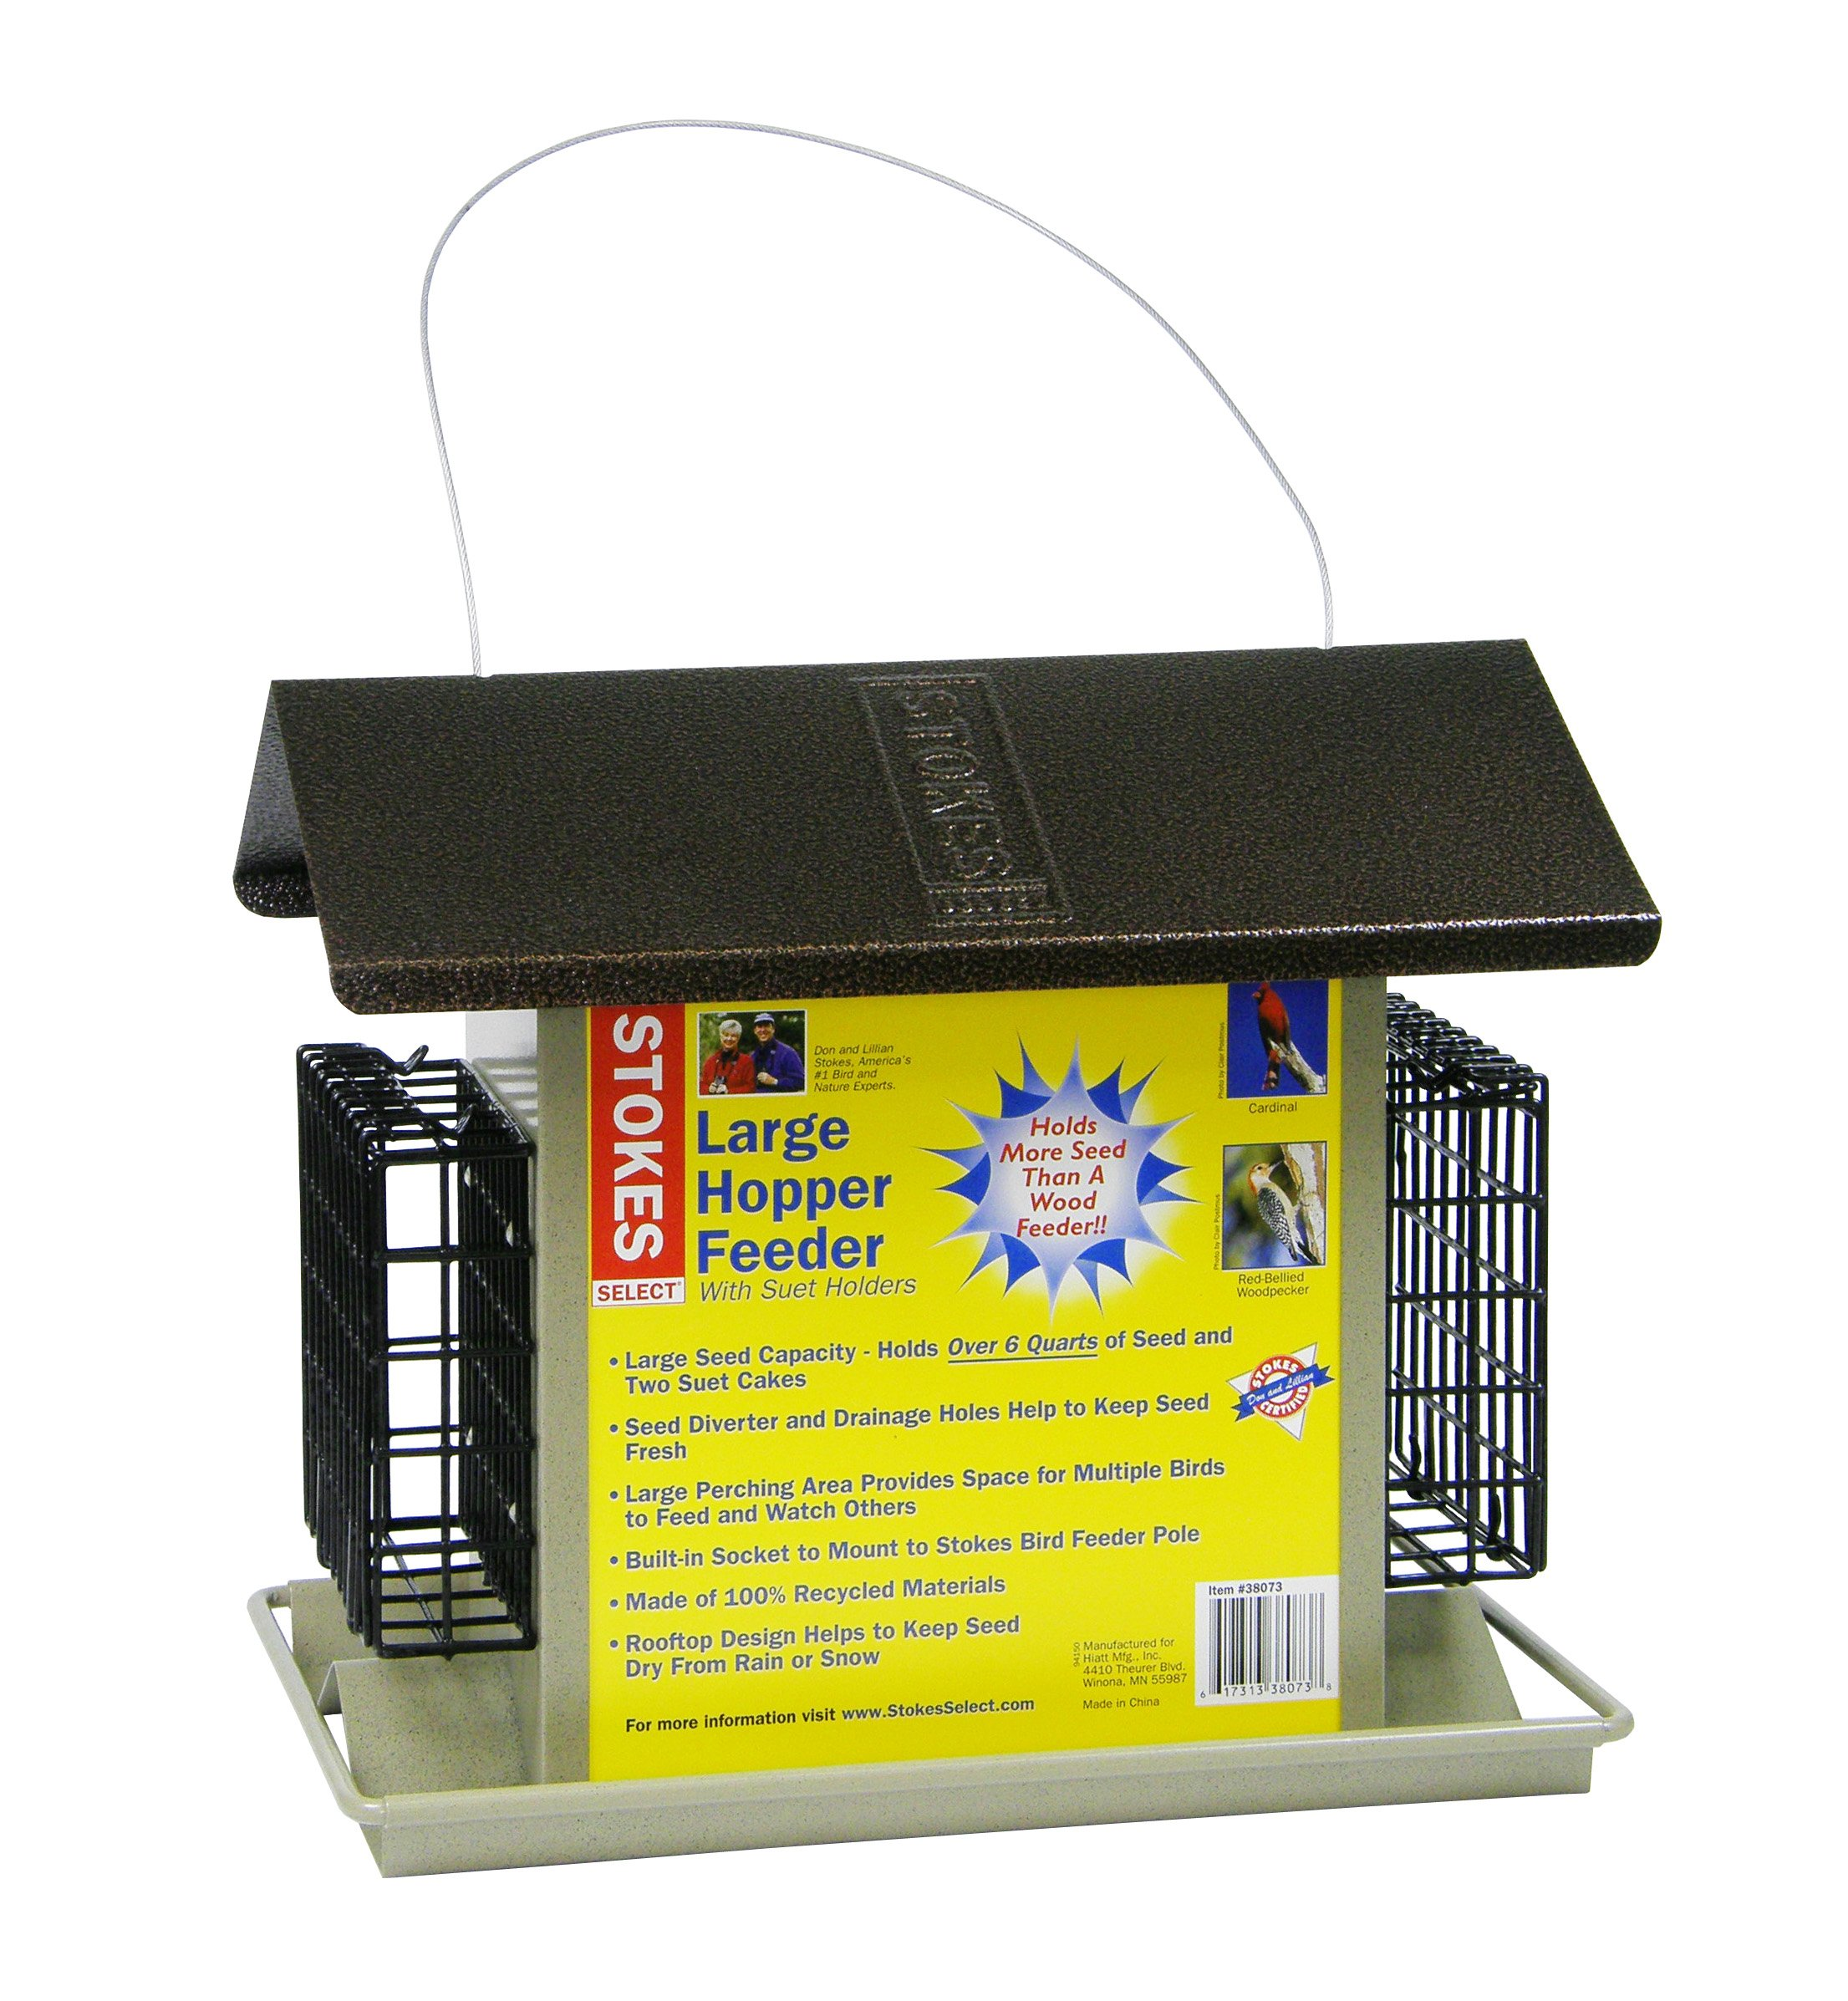 Stokes Select Large Hopper Bird Feeder with Two Suet Cake Holders, 6lb Seed Capacity by Stokes Select